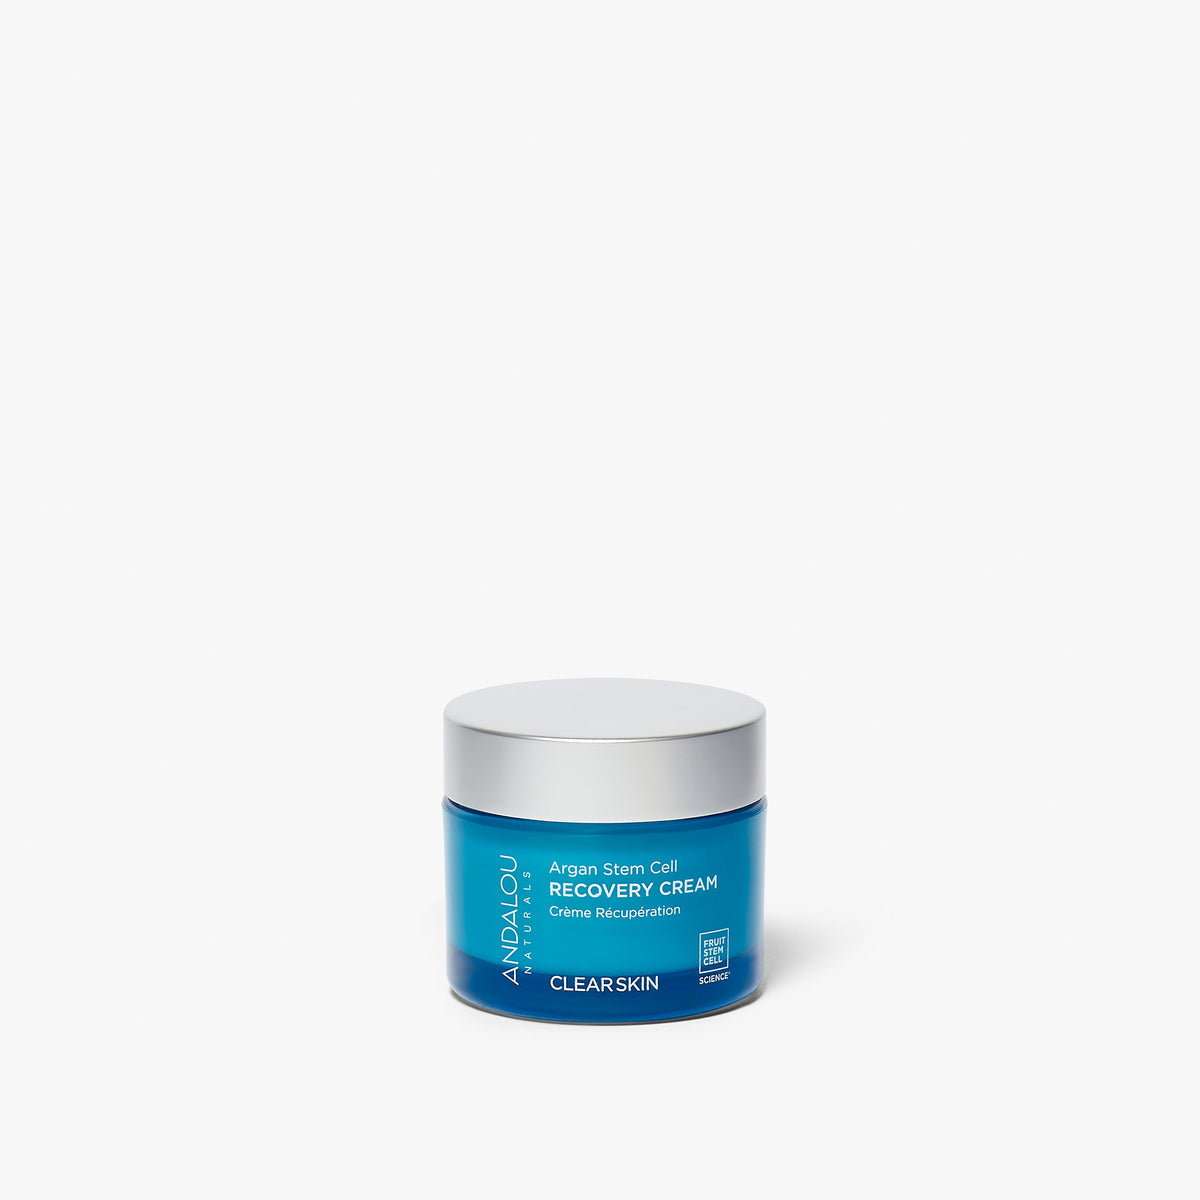 Clear Skin Argan Stem Cell Recovery Cream jar